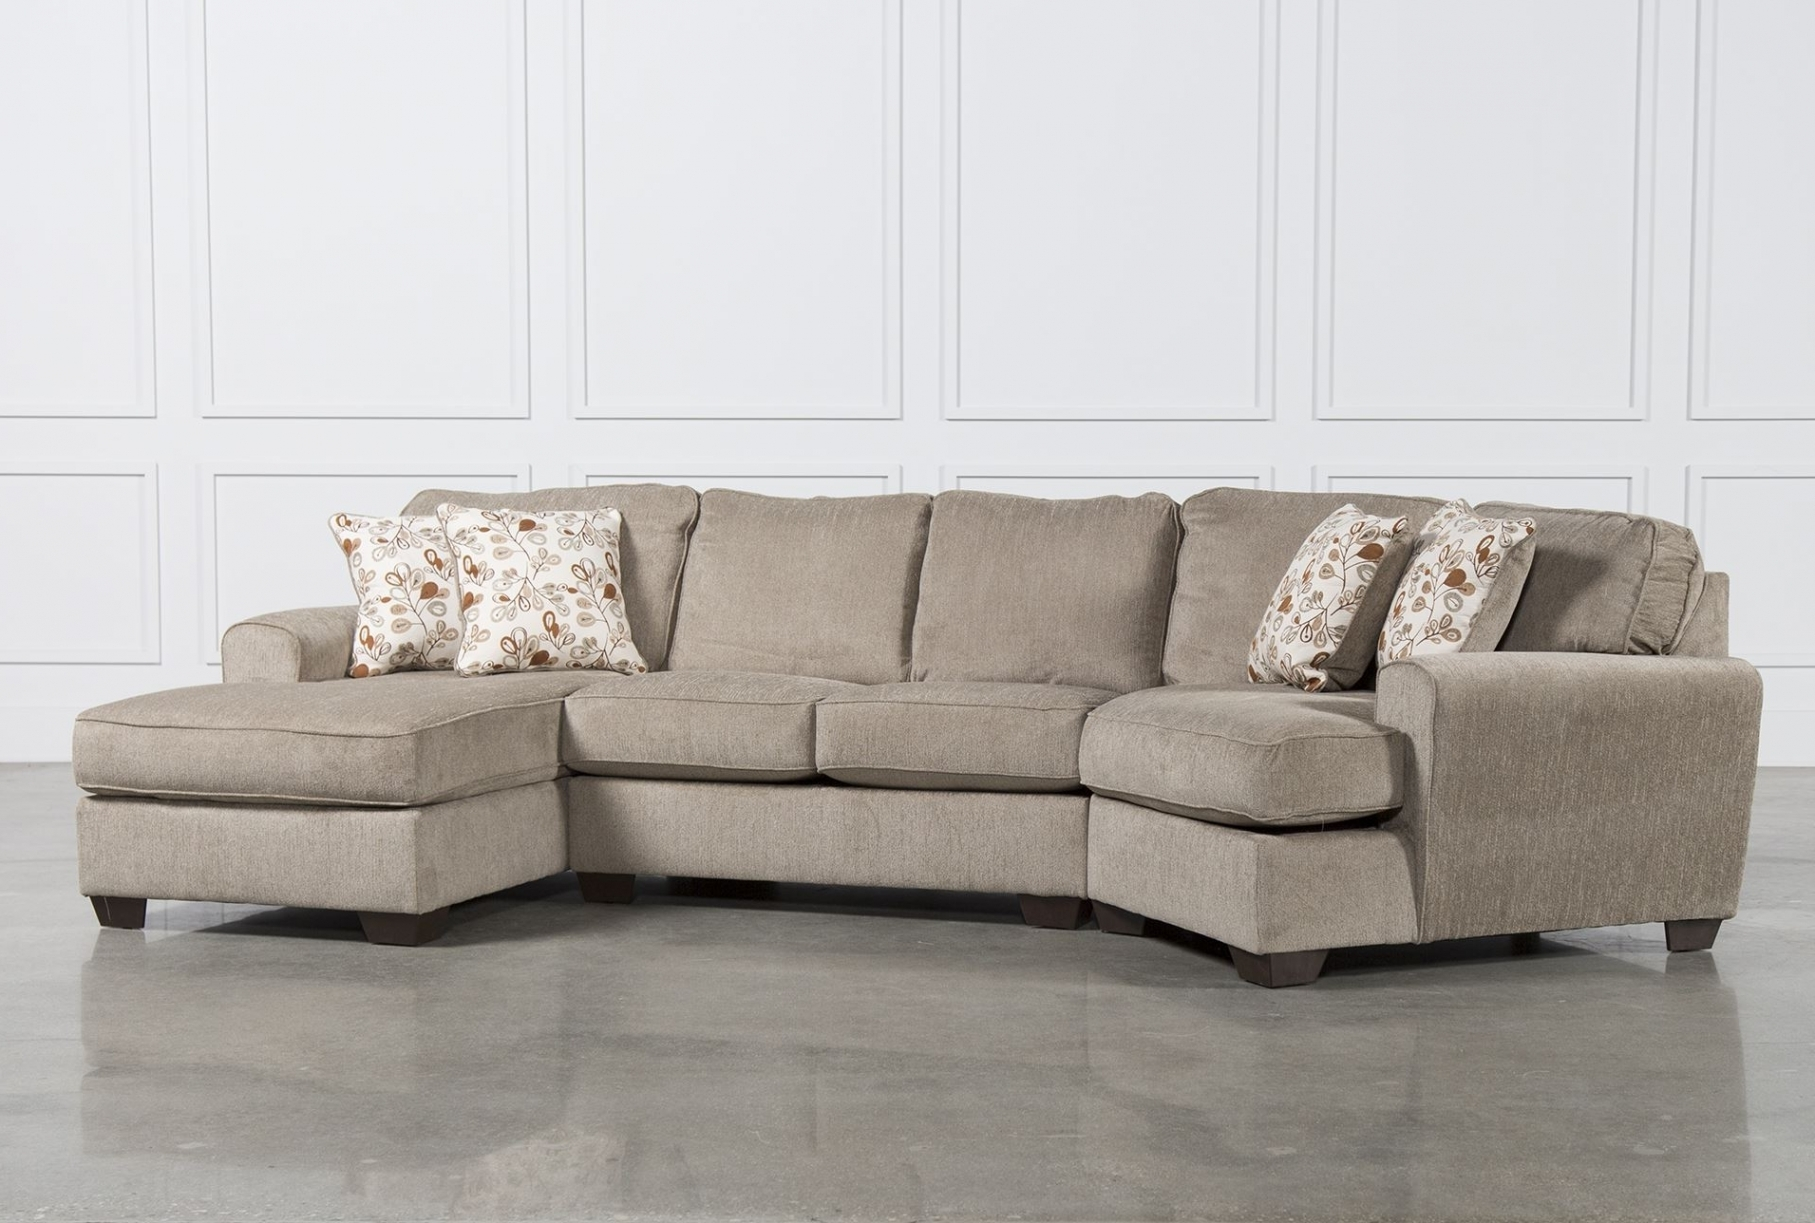 angled sectional sofa ex display sofas scs couch awesome full